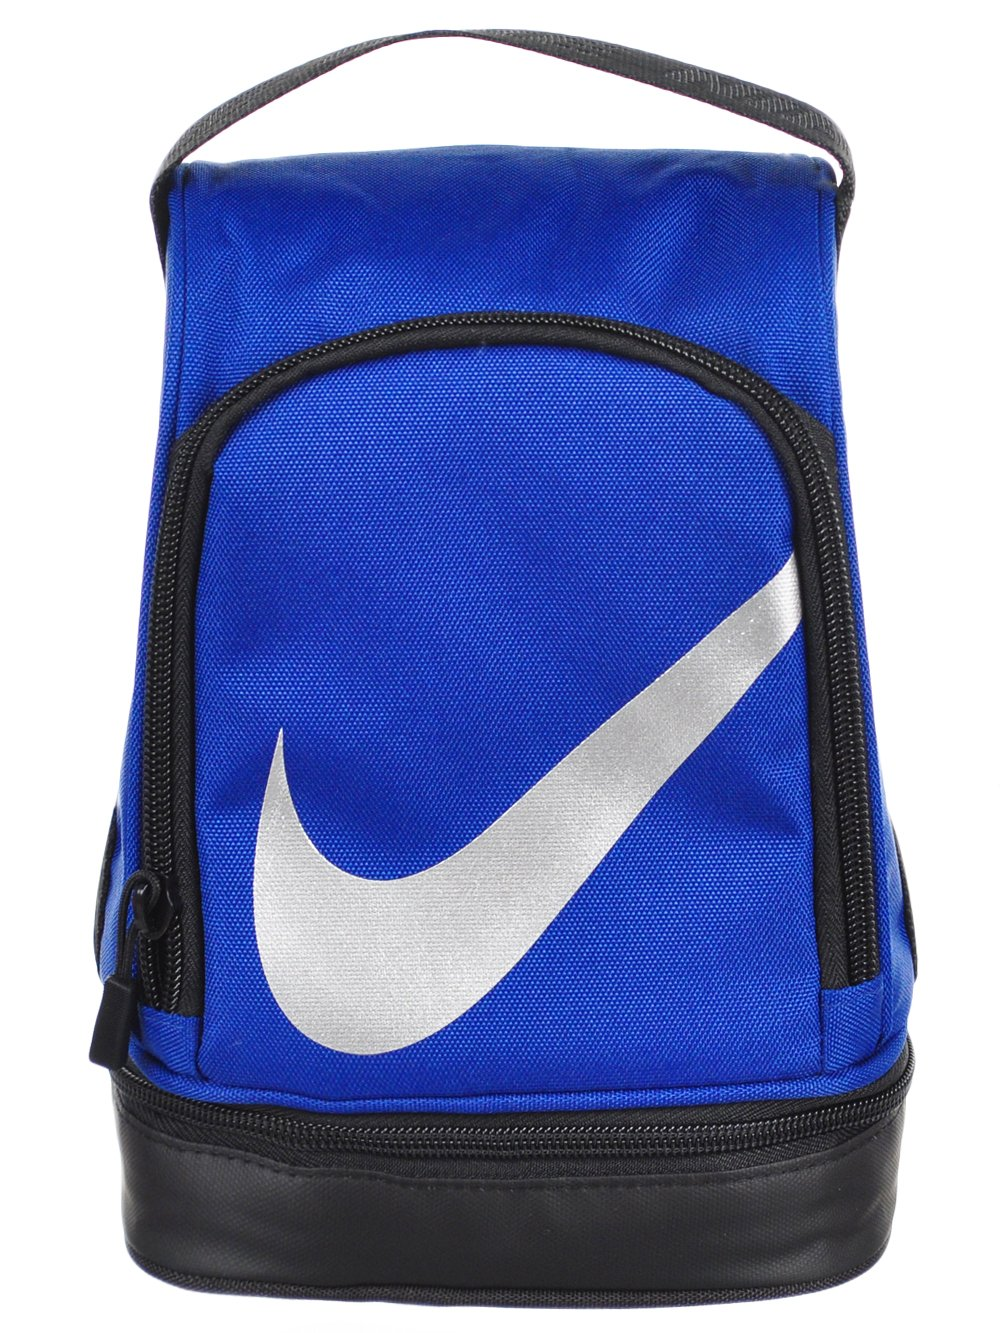 NIKE Fuel Pack 2.0 Insulated Lunchbox - gym blue, one size